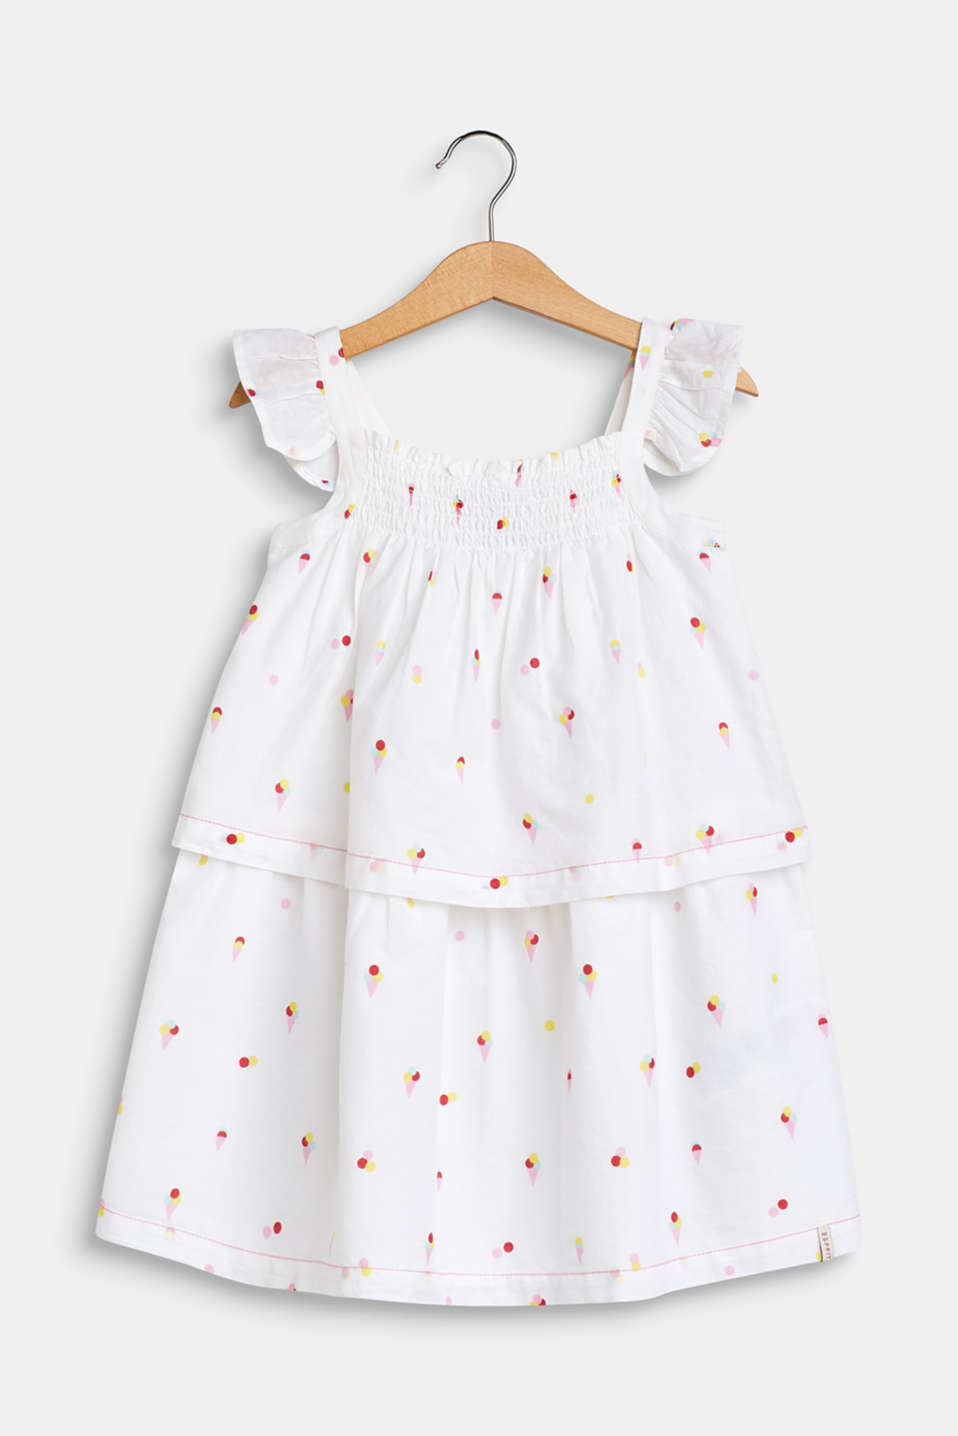 Esprit - Flounce dress with an ice cream print, 100% cotton